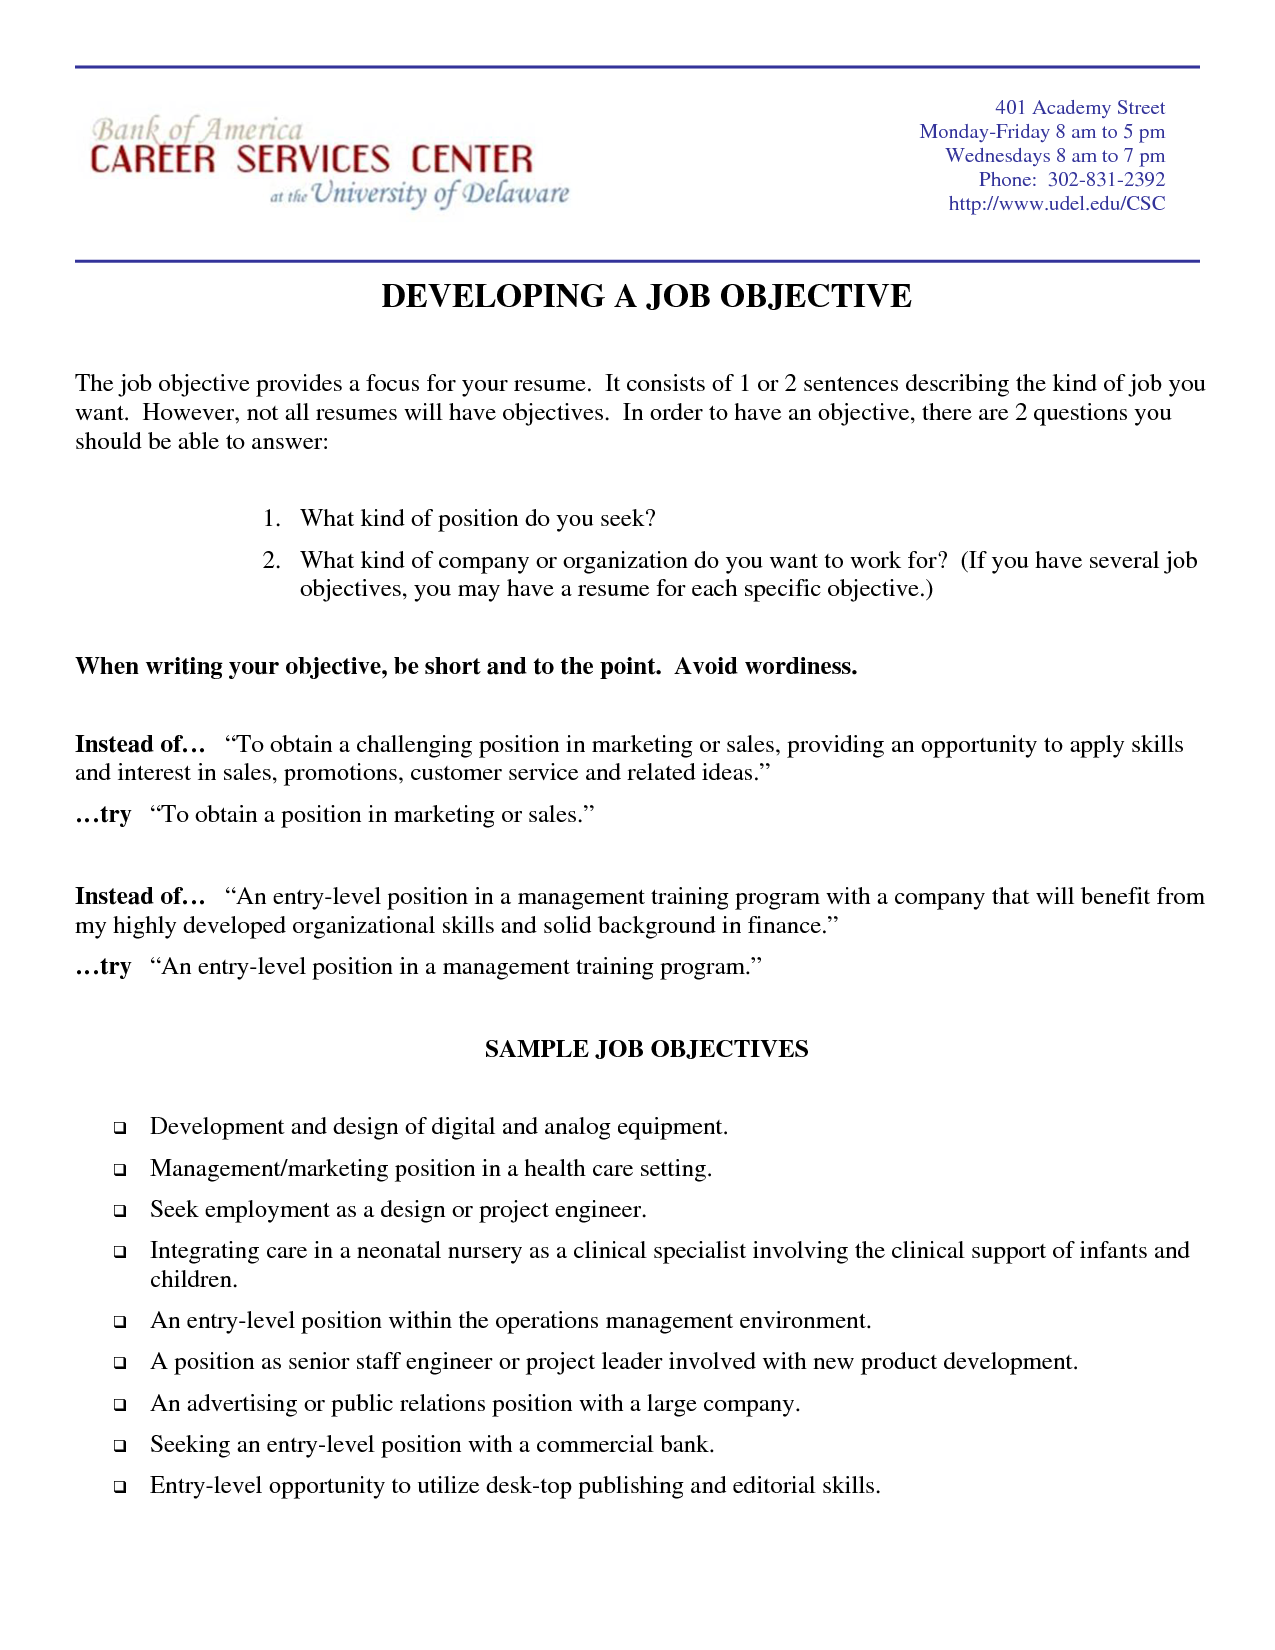 General Resume Objective Statements Marketing Resume Objective Samples Resumes Design The Relic